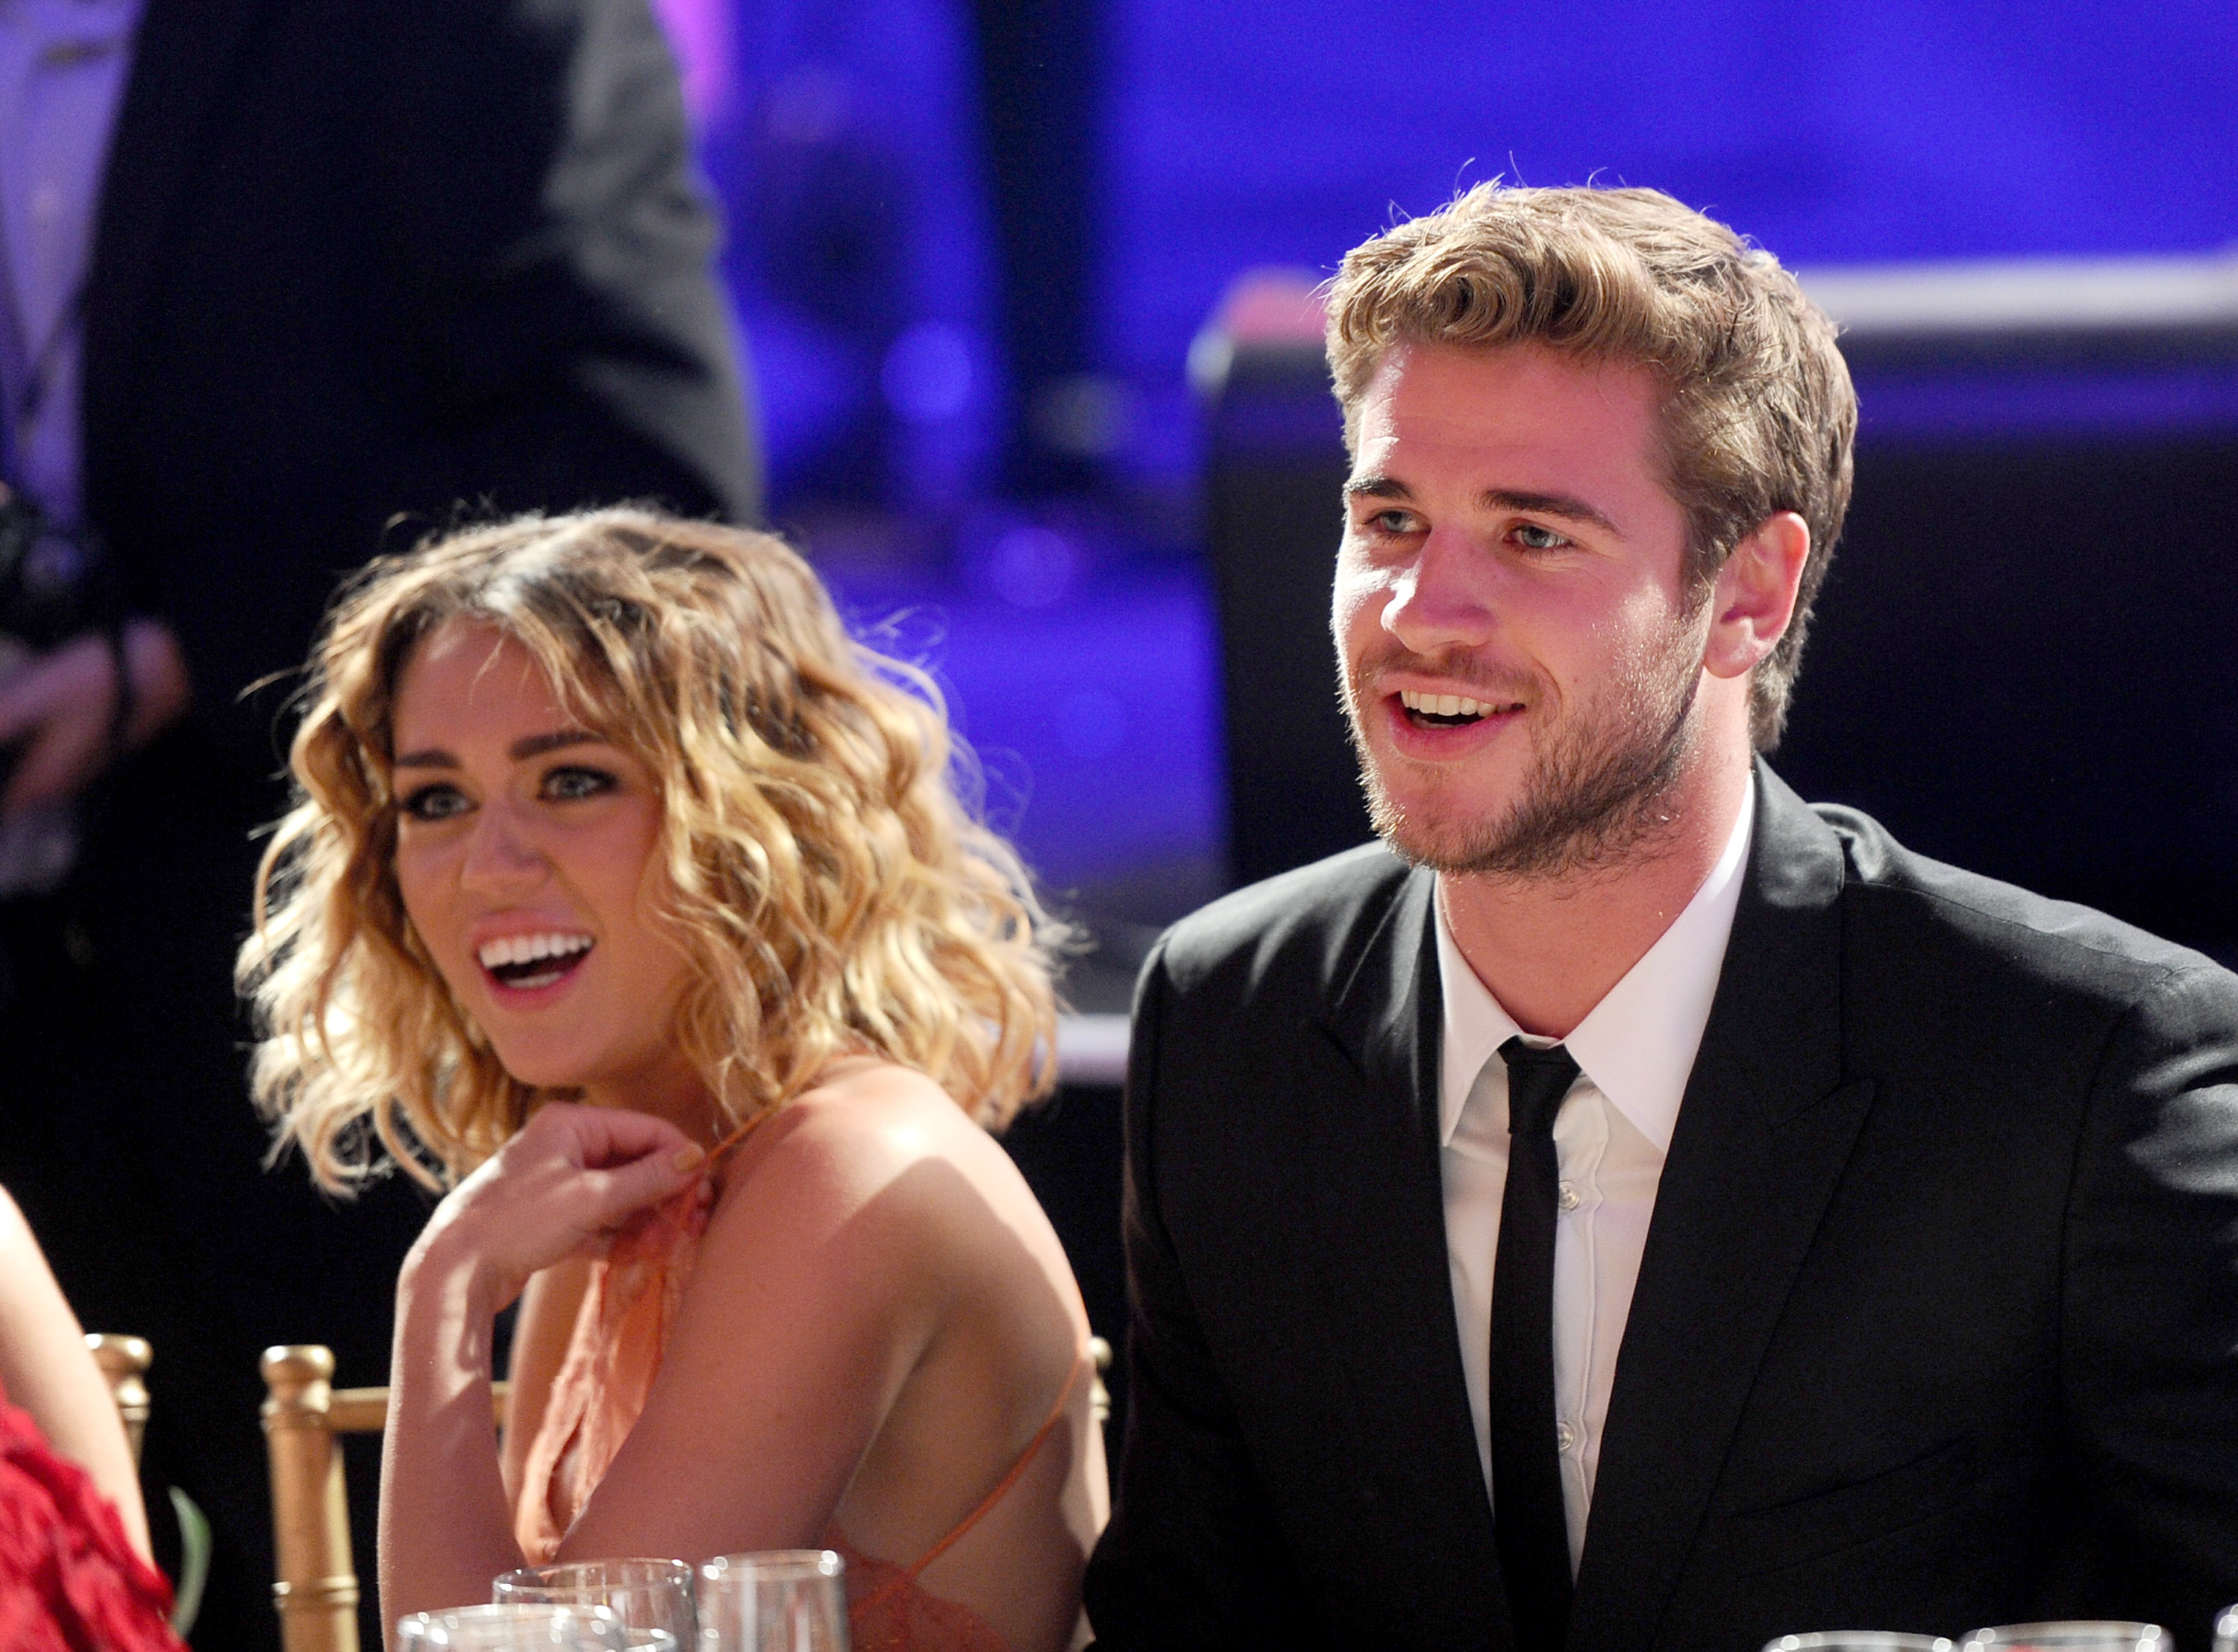 Miley Cyrus and Liam Hemsworth at Muhammad Ali's C